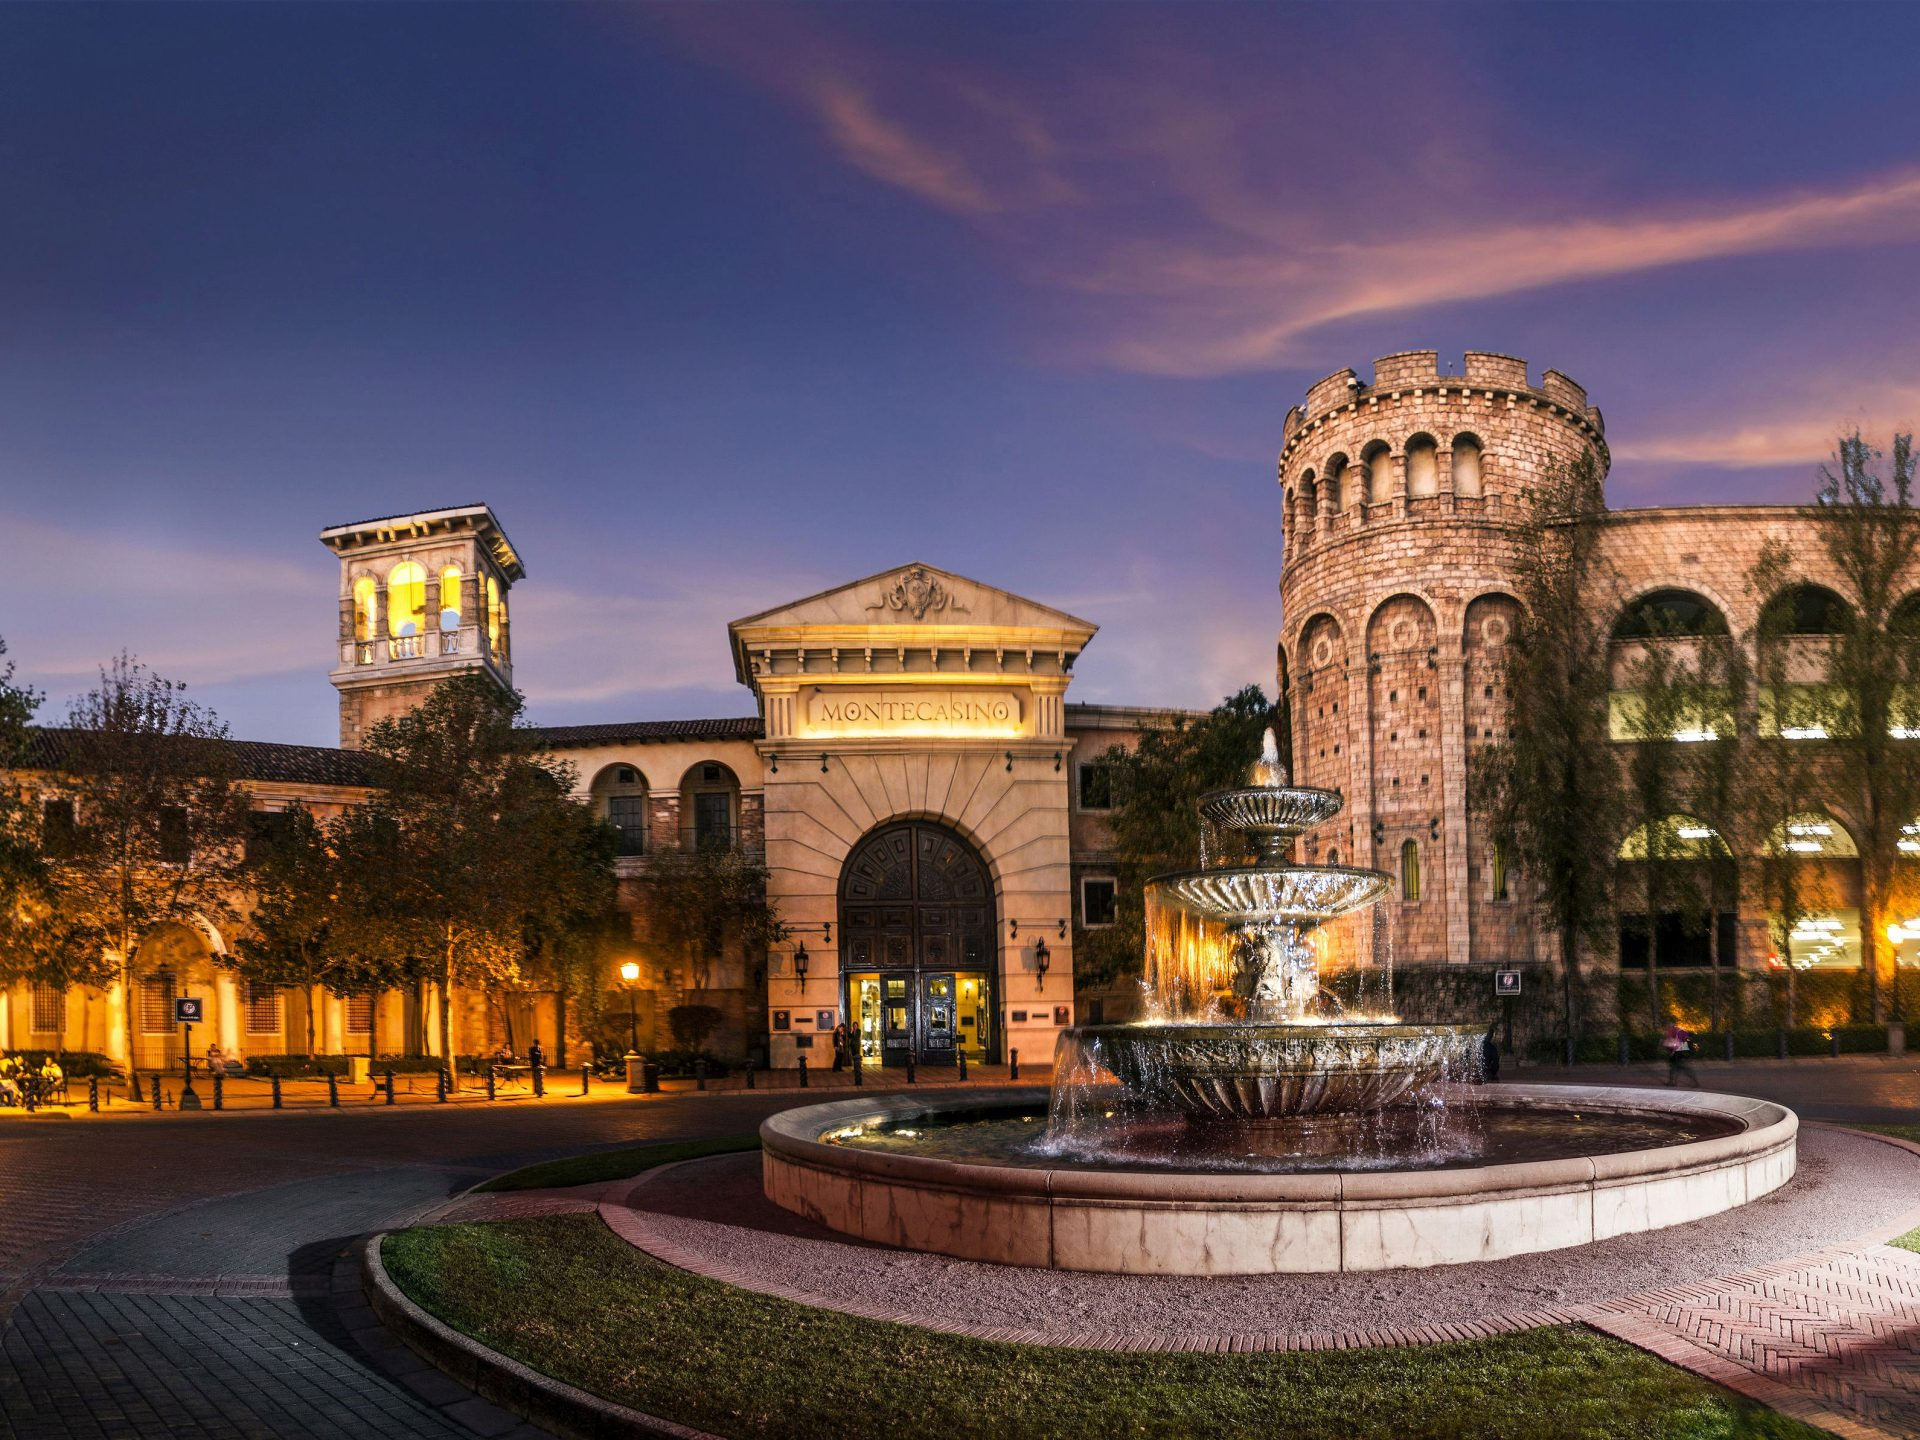 Montecasino entrance and fountain